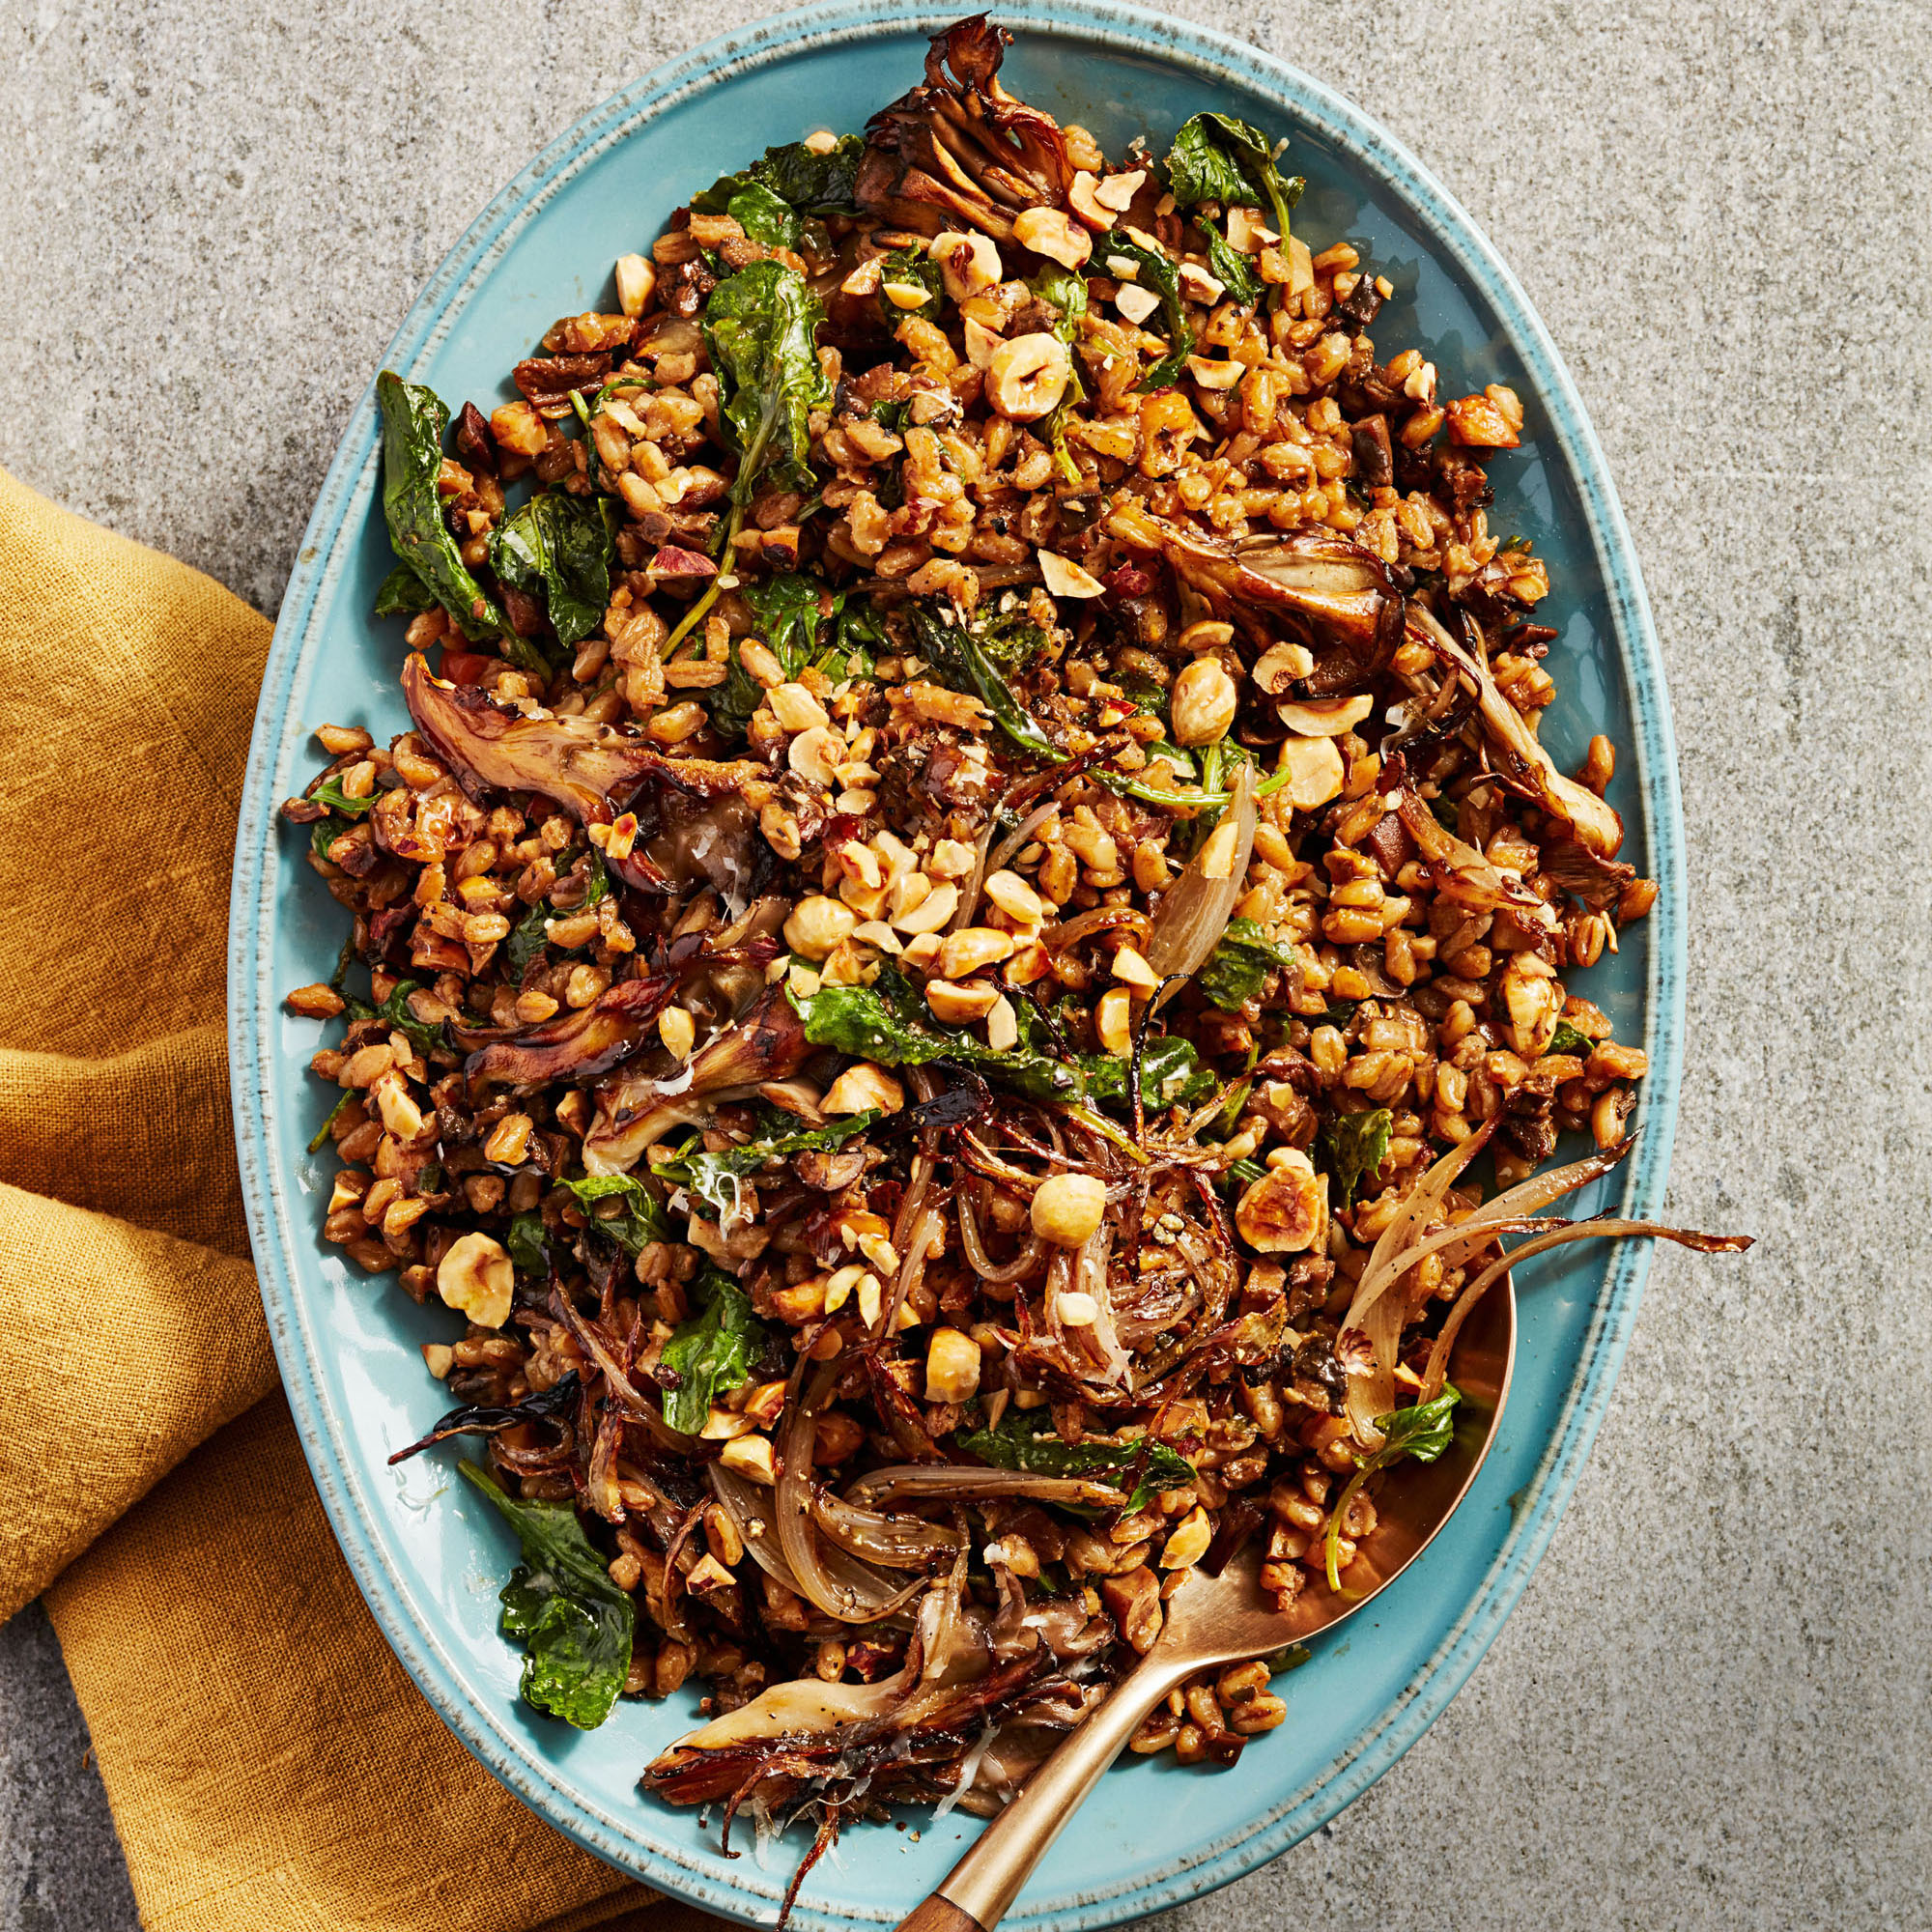 farro with mushrooms and hazelnuts on blue platter